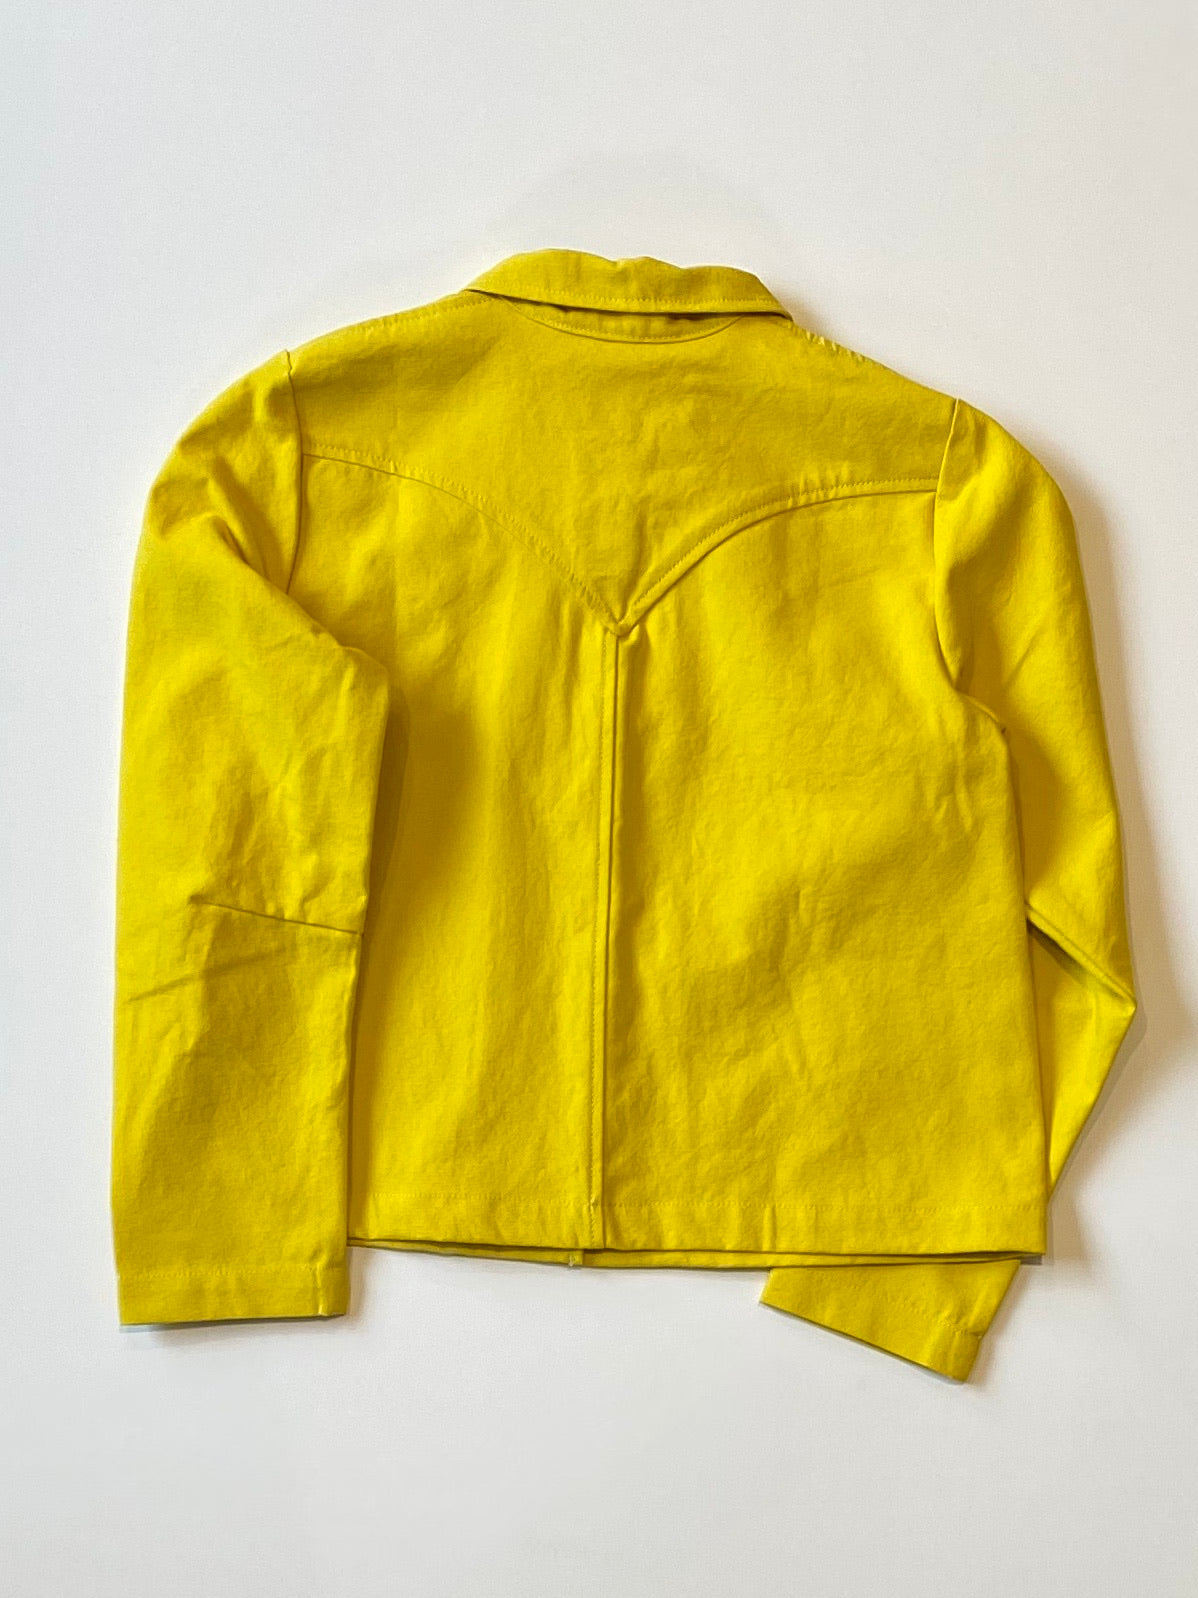 Lykke Wullf - Shrunken Ranch Jacket / Sulphur